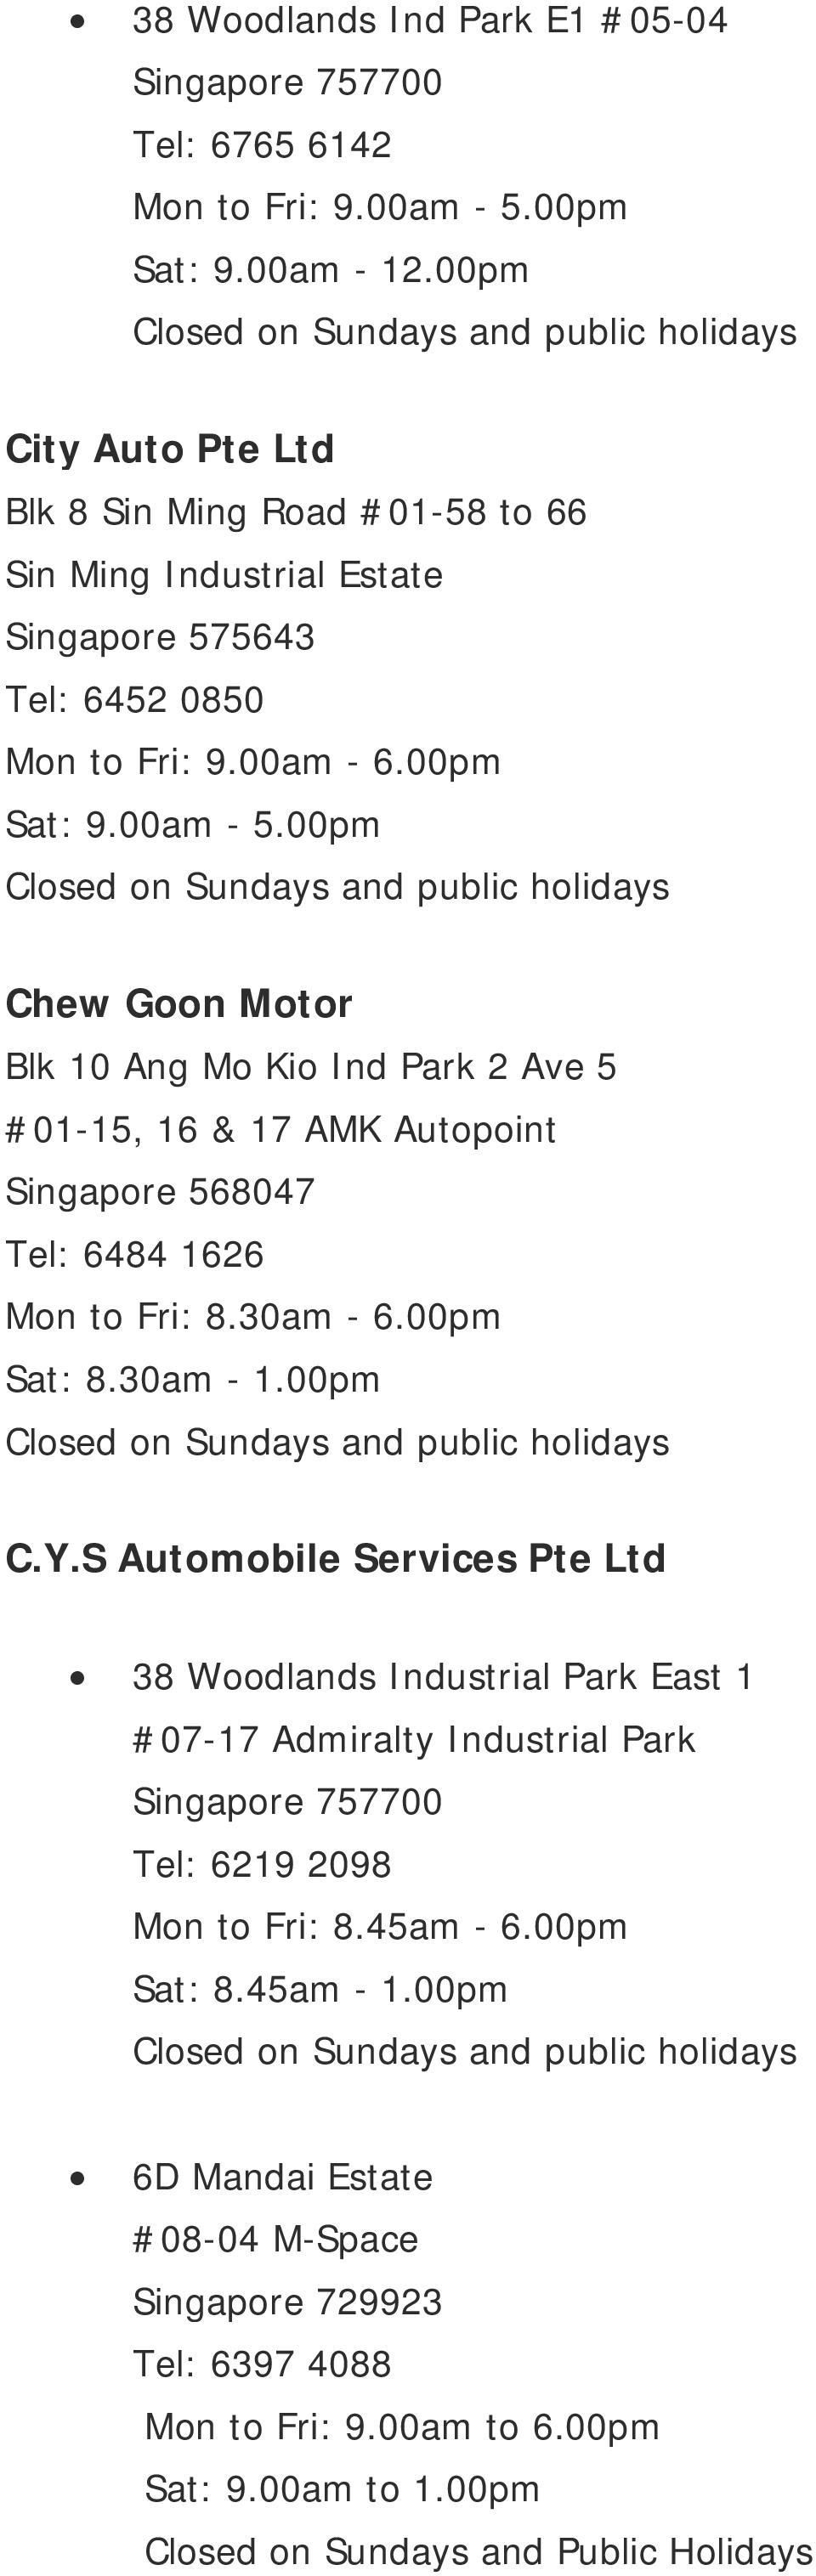 00pm Chew Goon Motor Blk 10 Ang Mo Kio Ind Park 2 Ave 5 #01-15, 16 & 17 AMK Autopoint Singapore 568047 Tel: 6484 1626 Mon to Fri: 8.30am - 6.00pm Sat: 8.30am - 1.00pm C.Y.